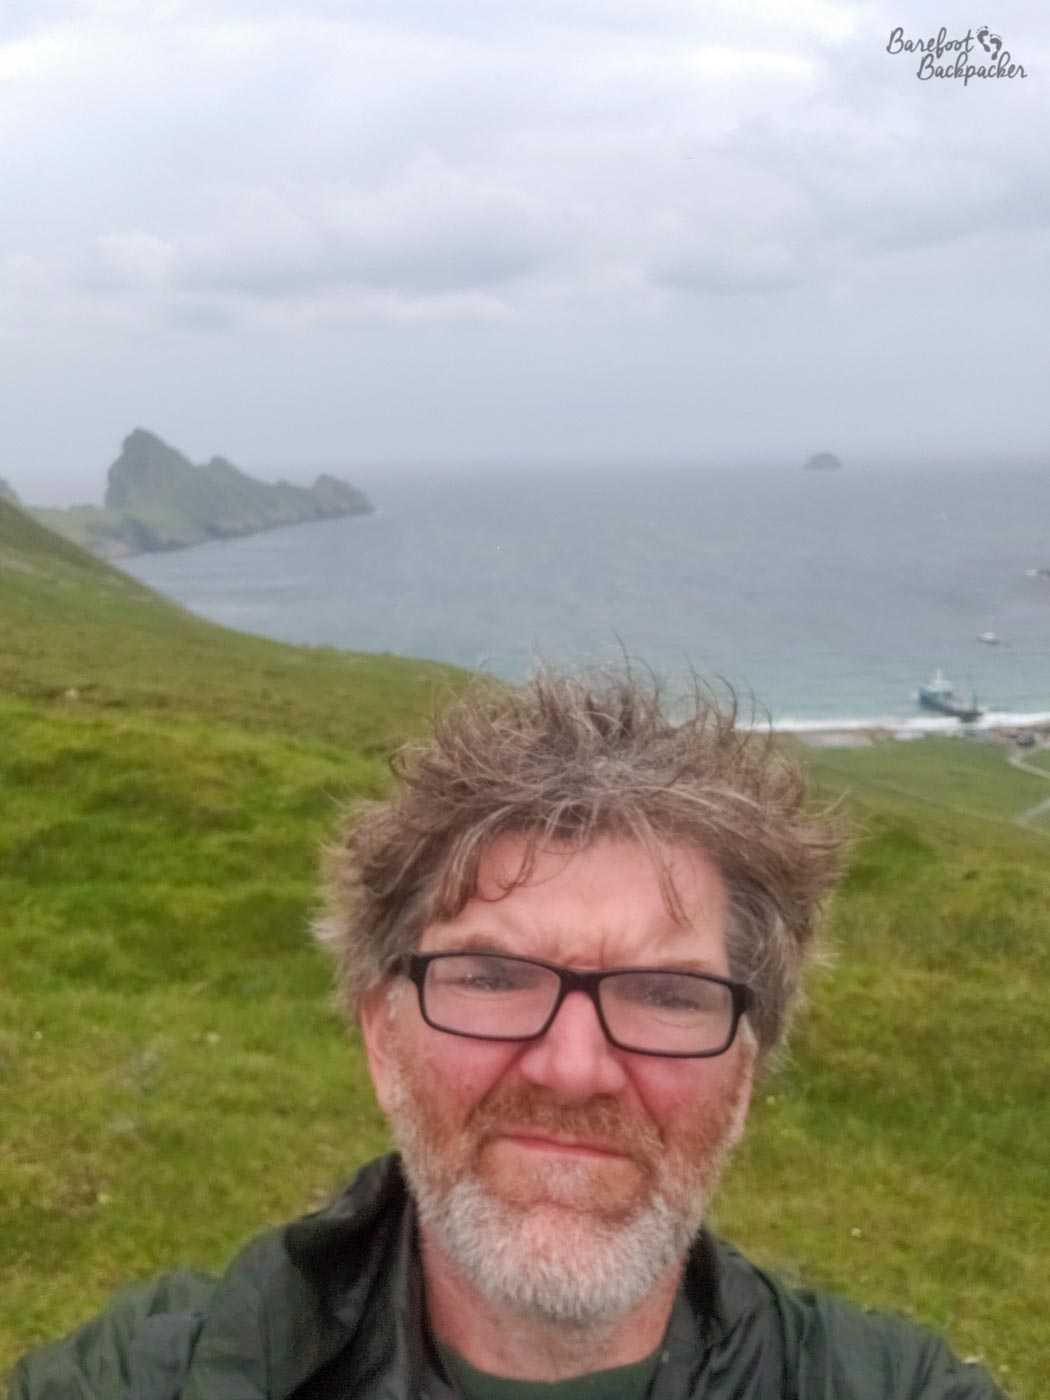 A selfie of me (The Barefoot Backpacker) taken atop one of the hills on Hirta. My visit coincided with the hottest day yet recorded in the rest of the UK. Here it was about 17°C, force 5 gales, and quite damp. Needless to say it was *not* the hottest day yet recorded here in St Kilda.